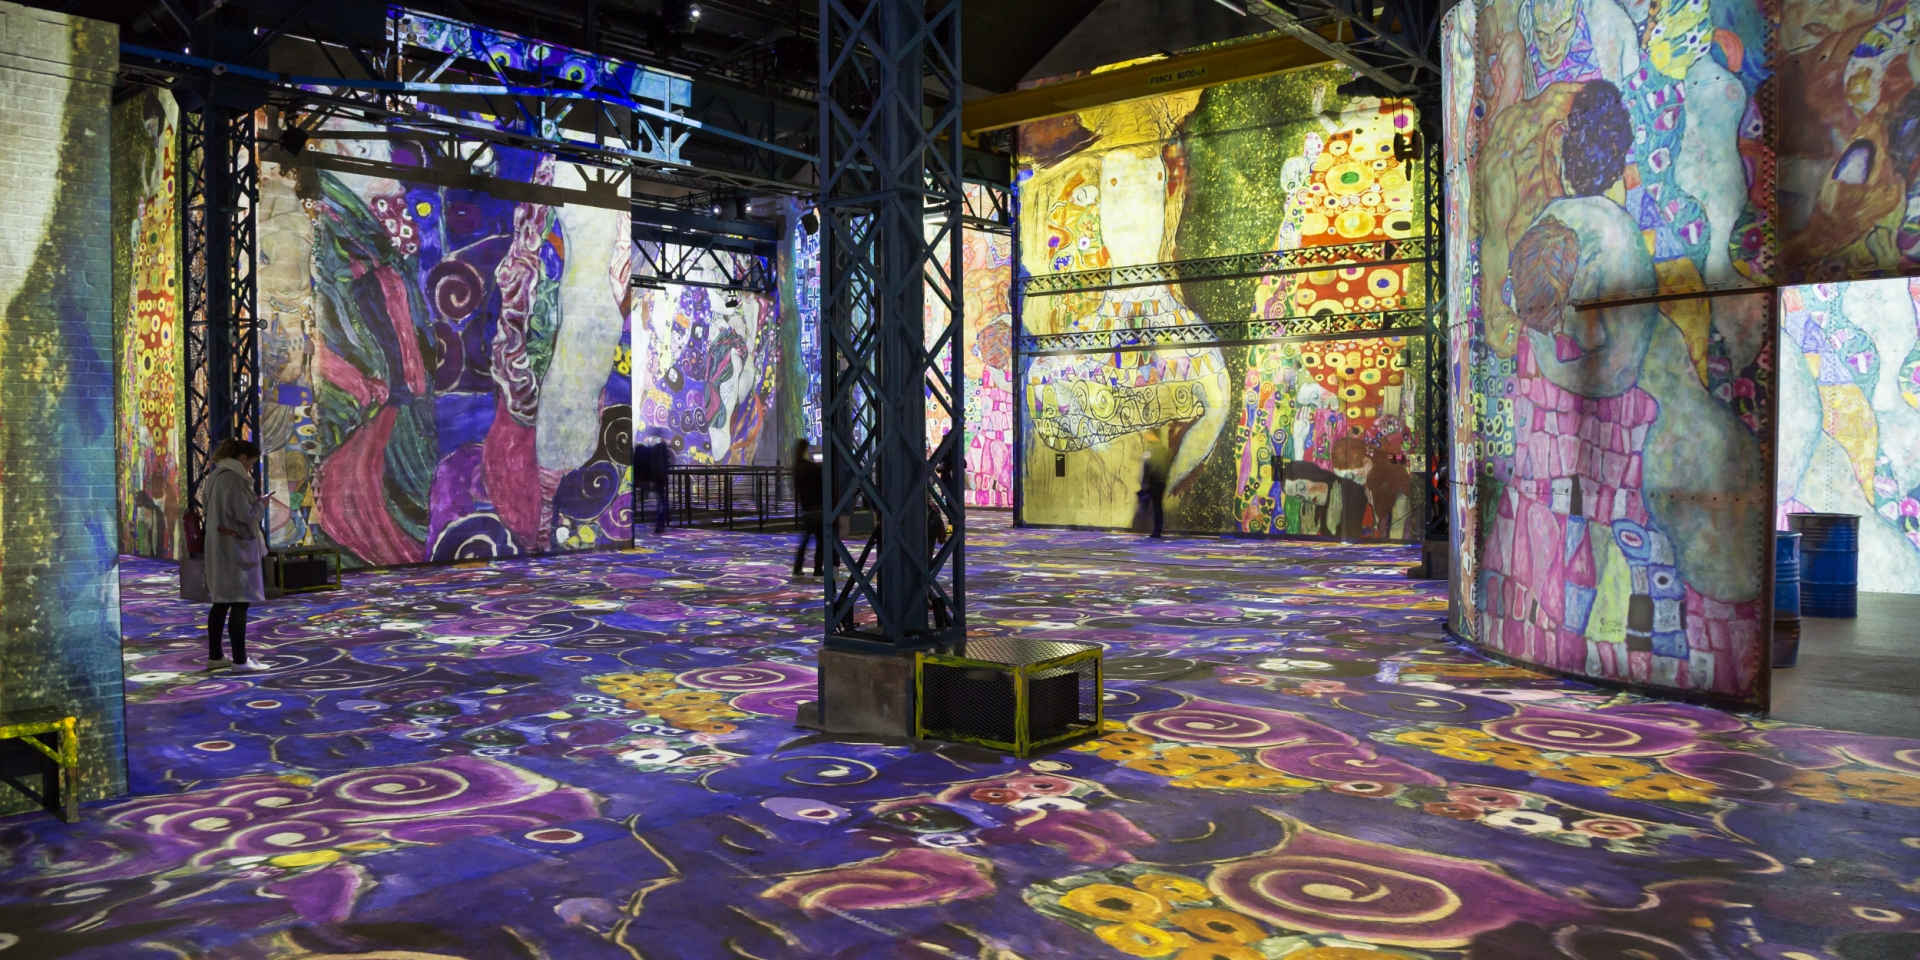 Digital Paris museum the Ateliers des Lumieres opened with a light and sound show of Gustav Klimt's work and this year, it welcomes the works of Van Gogh.